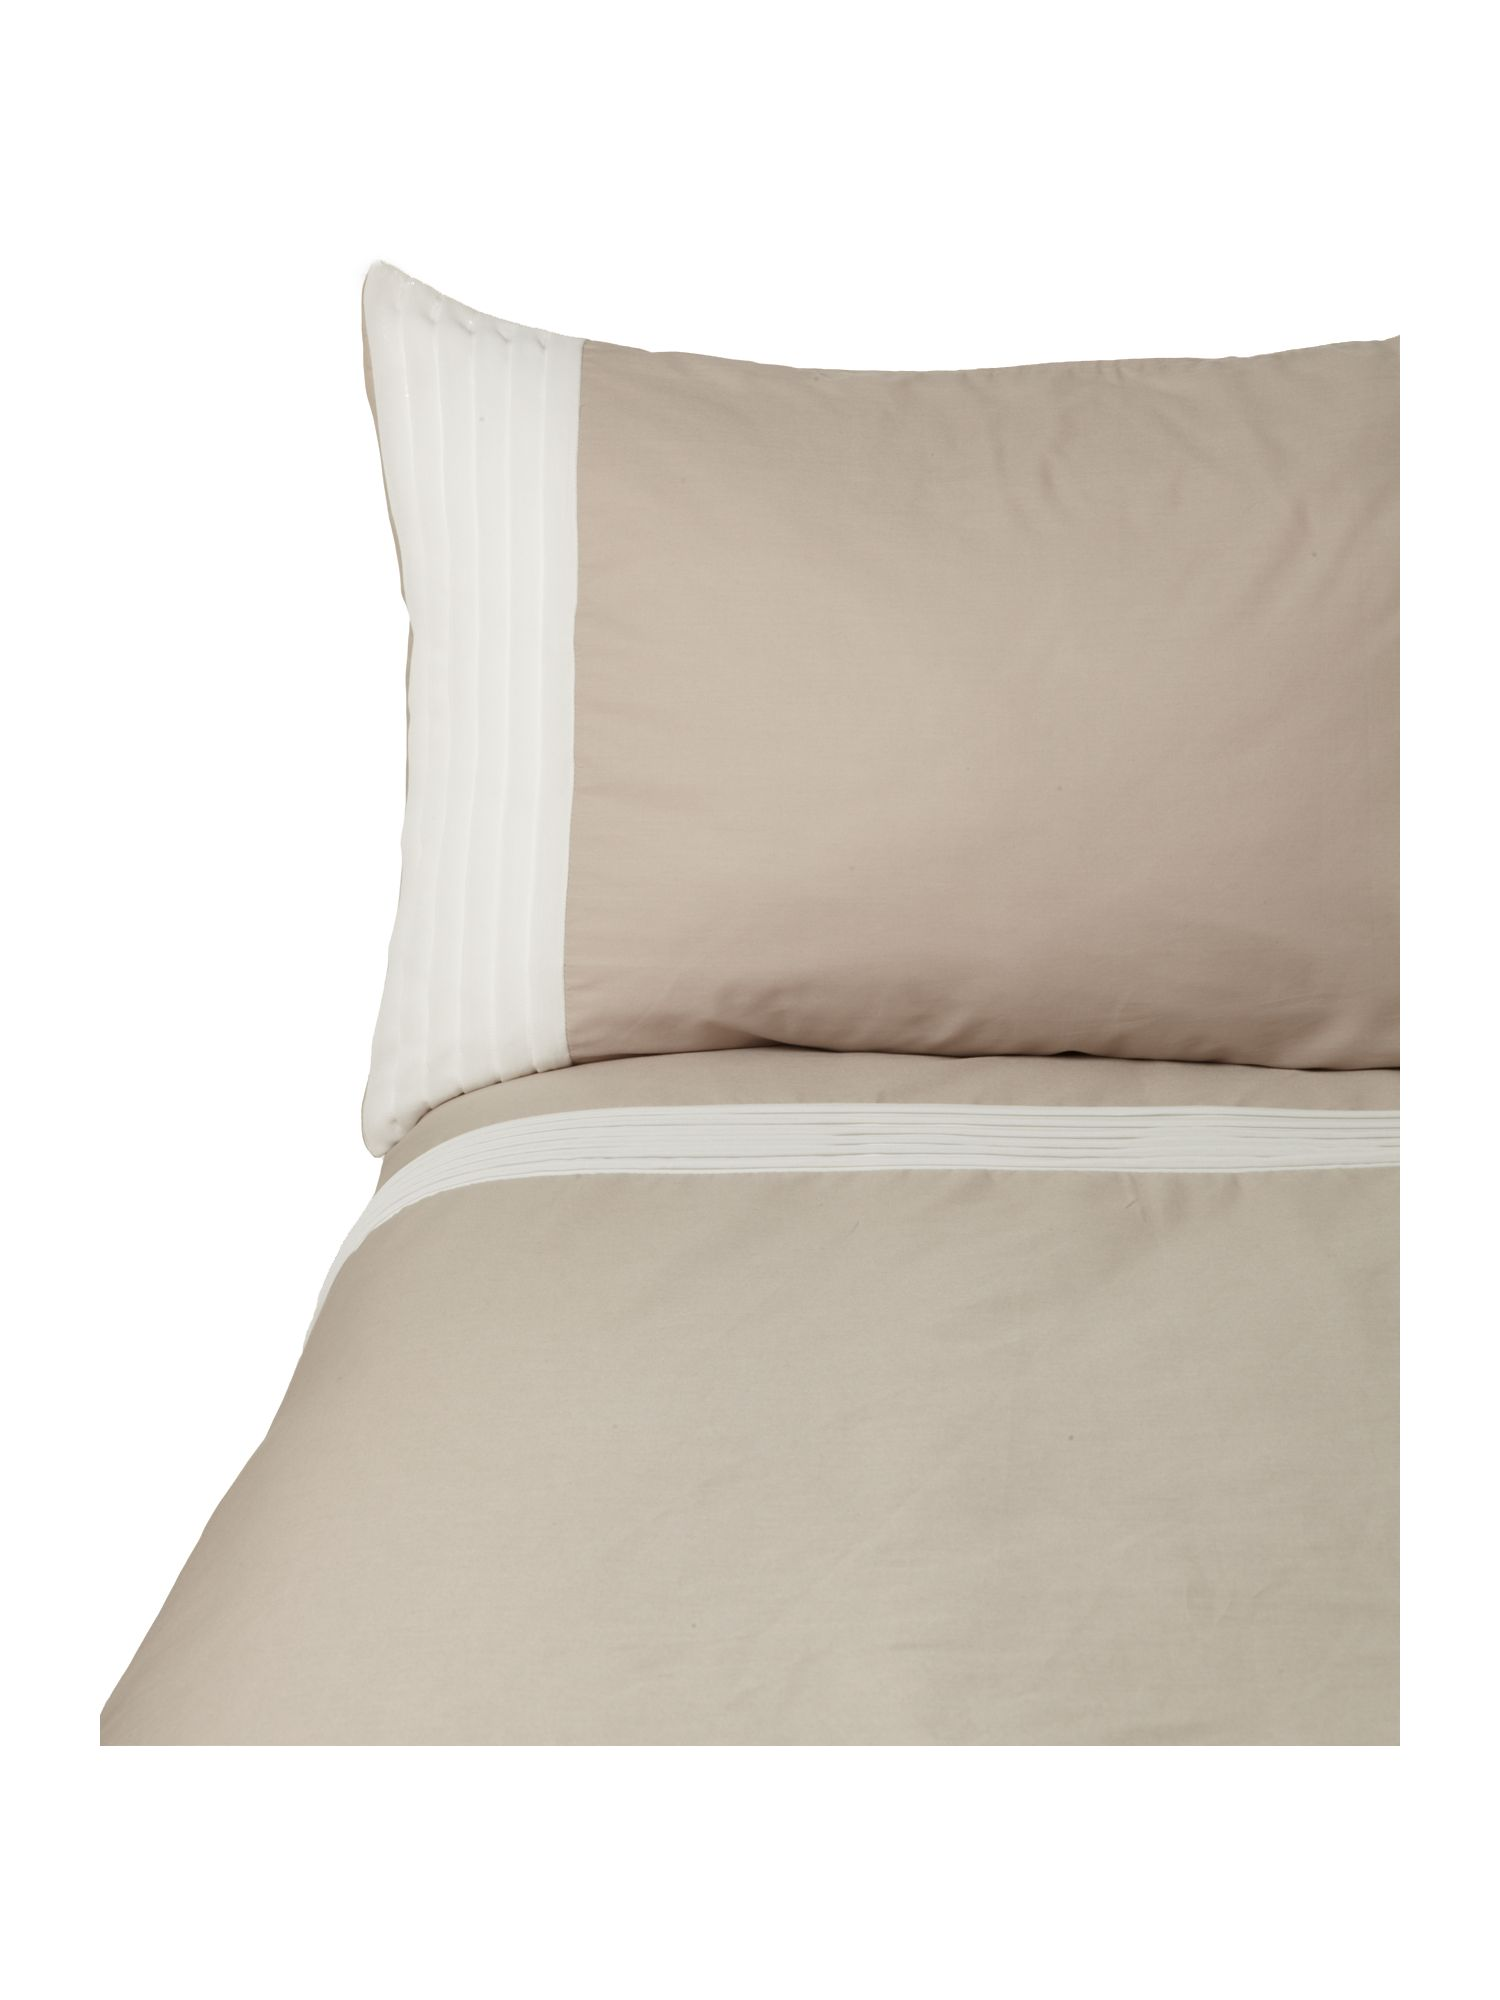 Poetry bedlinen in taupe